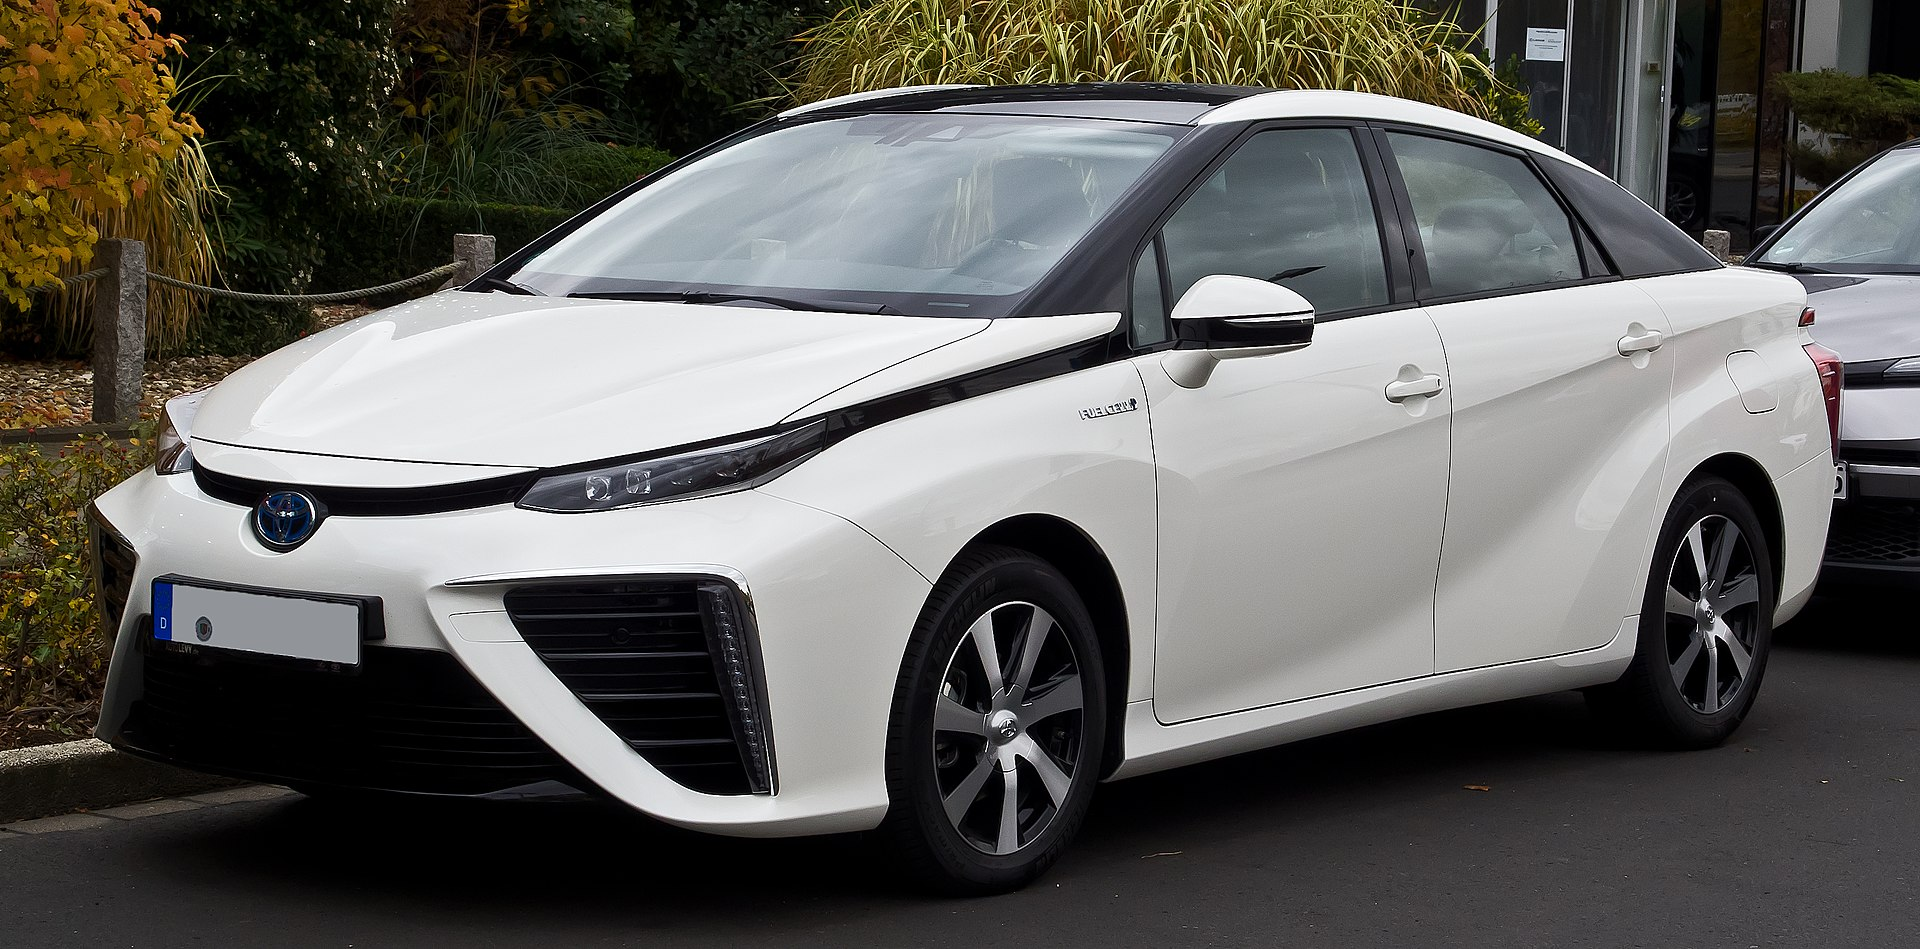 Photo of a hydrogen-powered car.